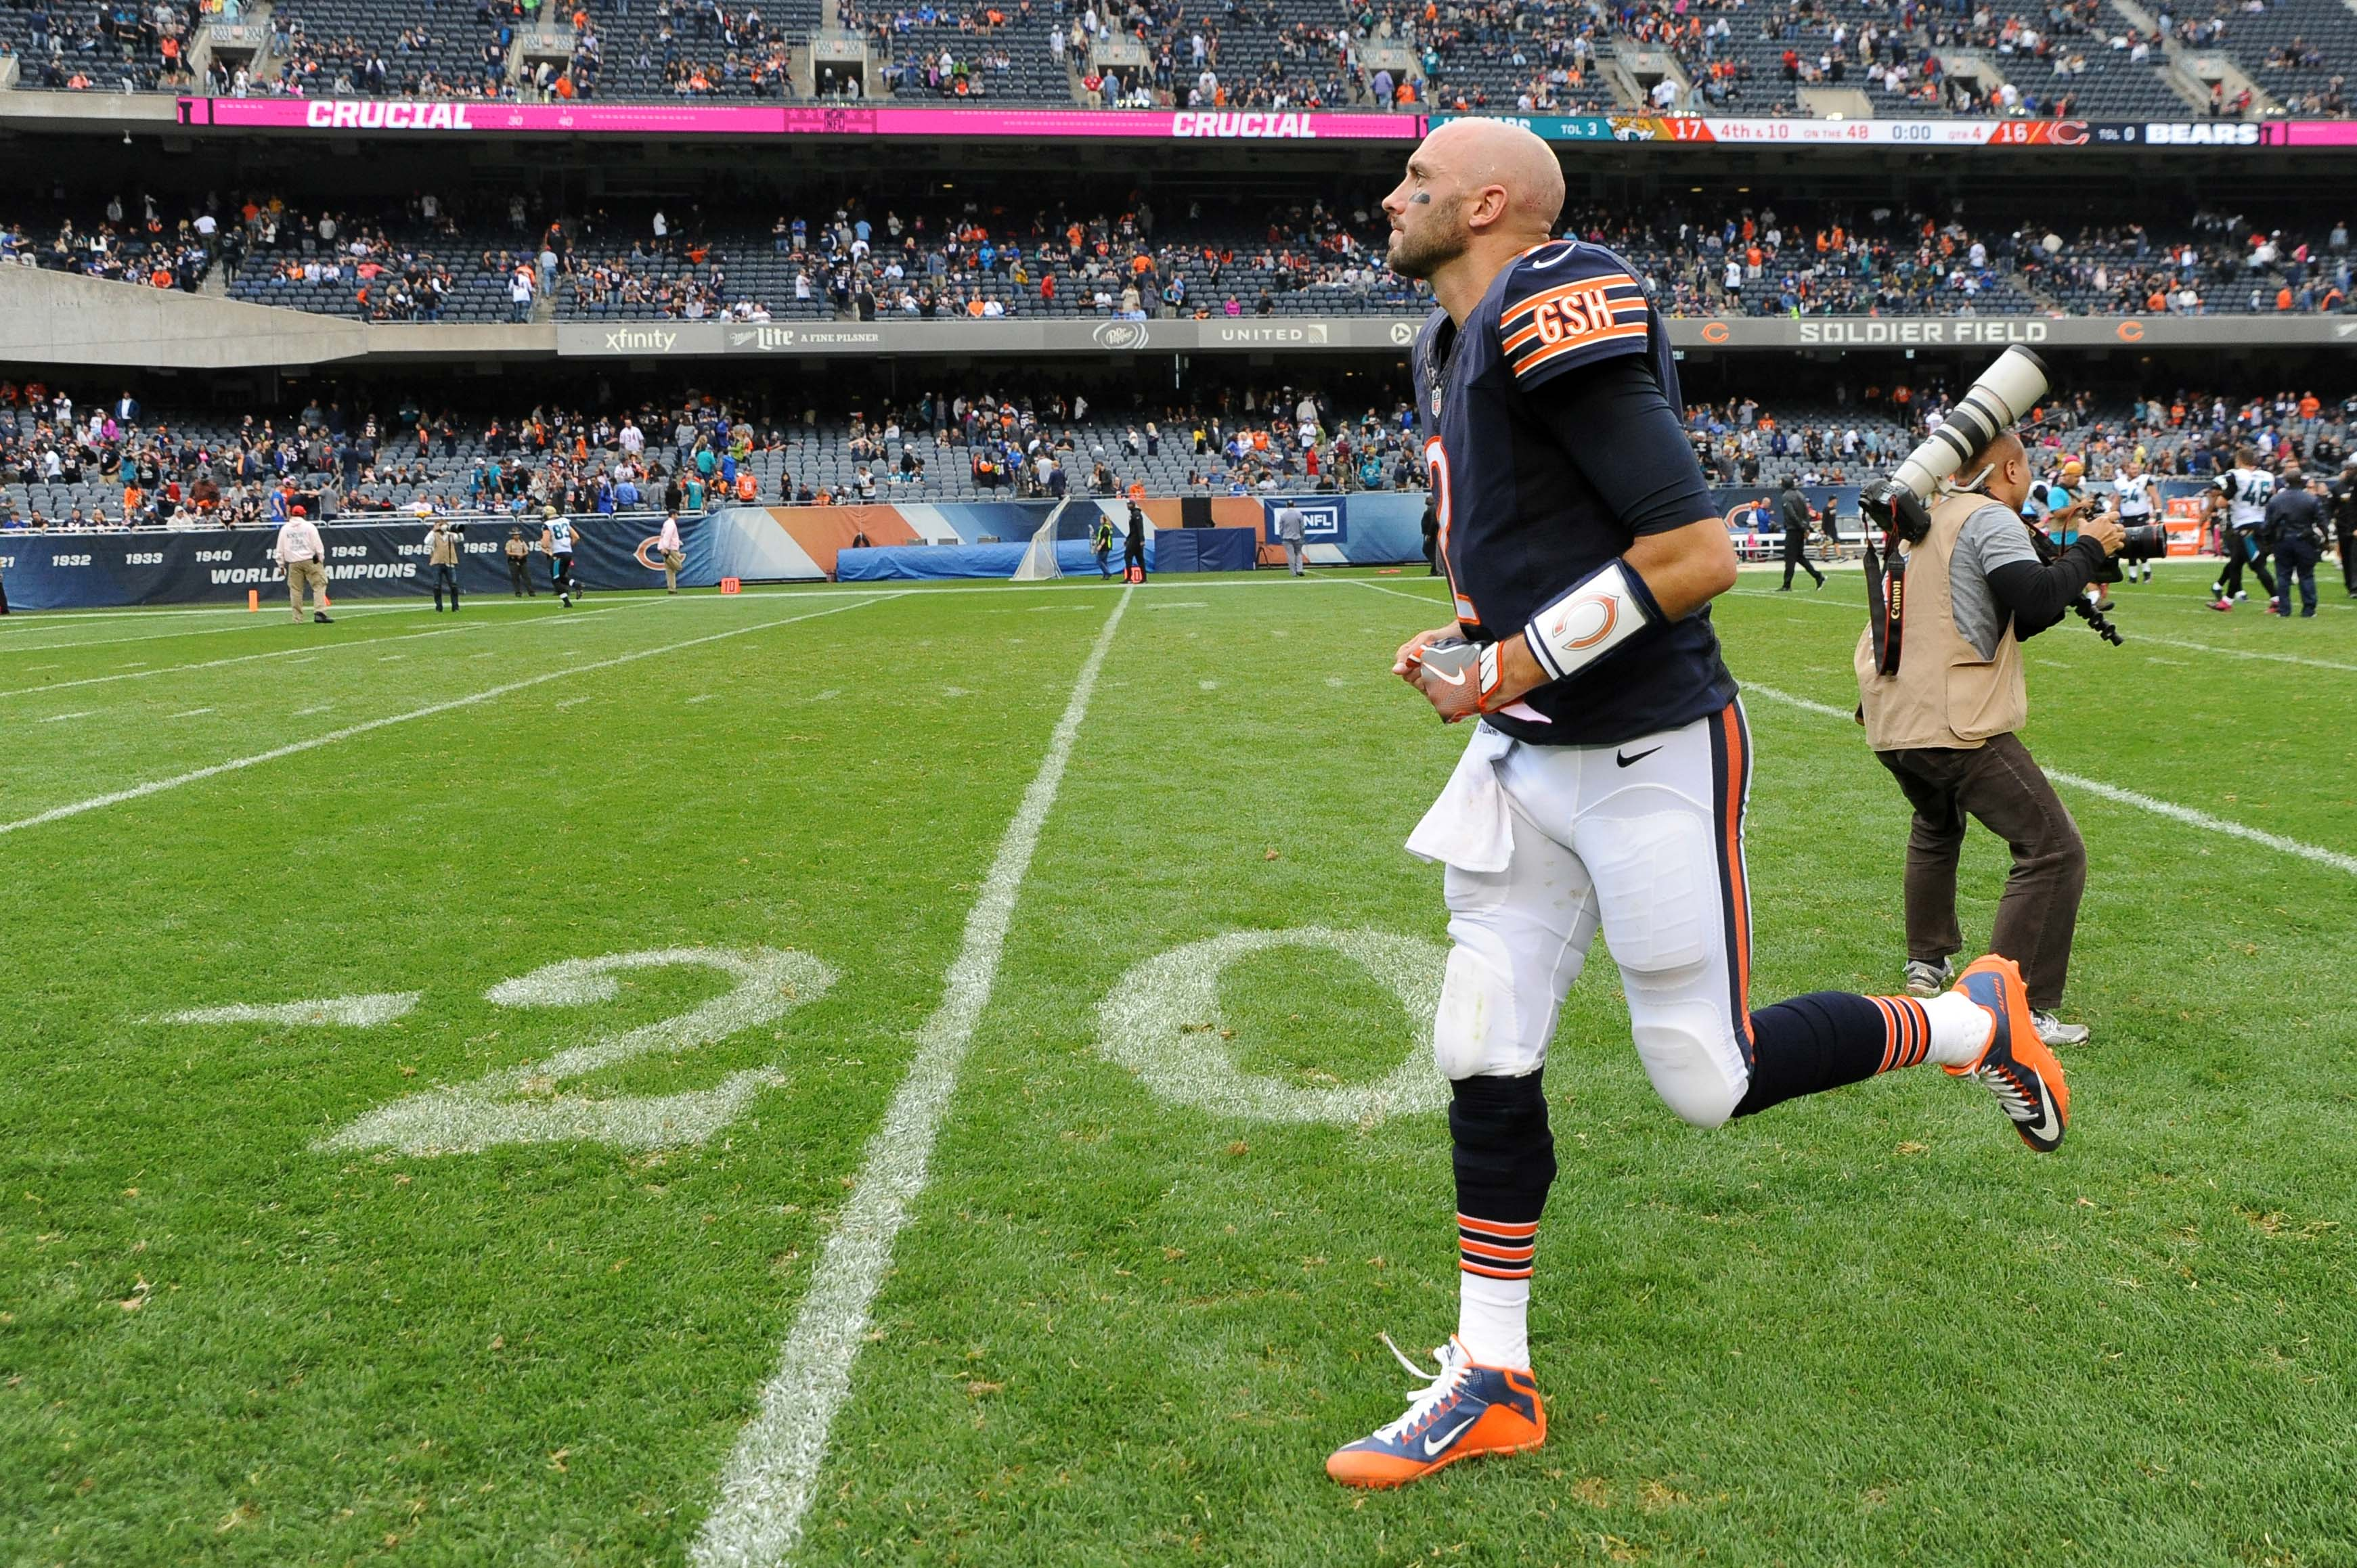 Oct 16, 2016; Chicago, IL, USA; Chicago Bears quarterback Brian Hoyer (2) exits the field after their loss against the Jacksonville Jaguars at Soldier Field. Jaguars won 17-16. Mandatory Credit: Patrick Gorski-USA TODAY Sports